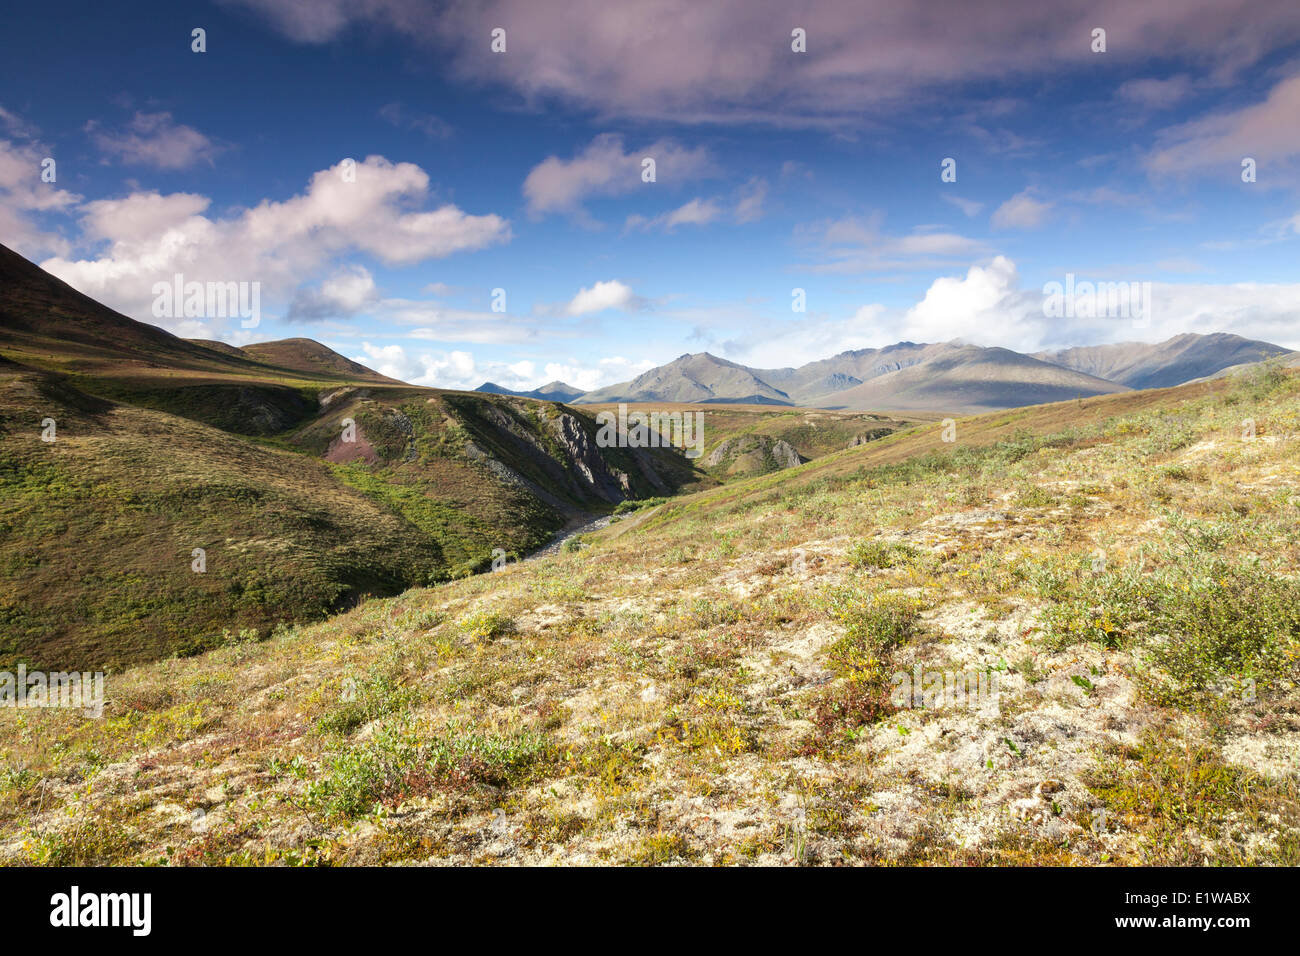 The Taiga Valley in the Yukon Territory as seen from the Dempster Highway, Canada - Stock Image